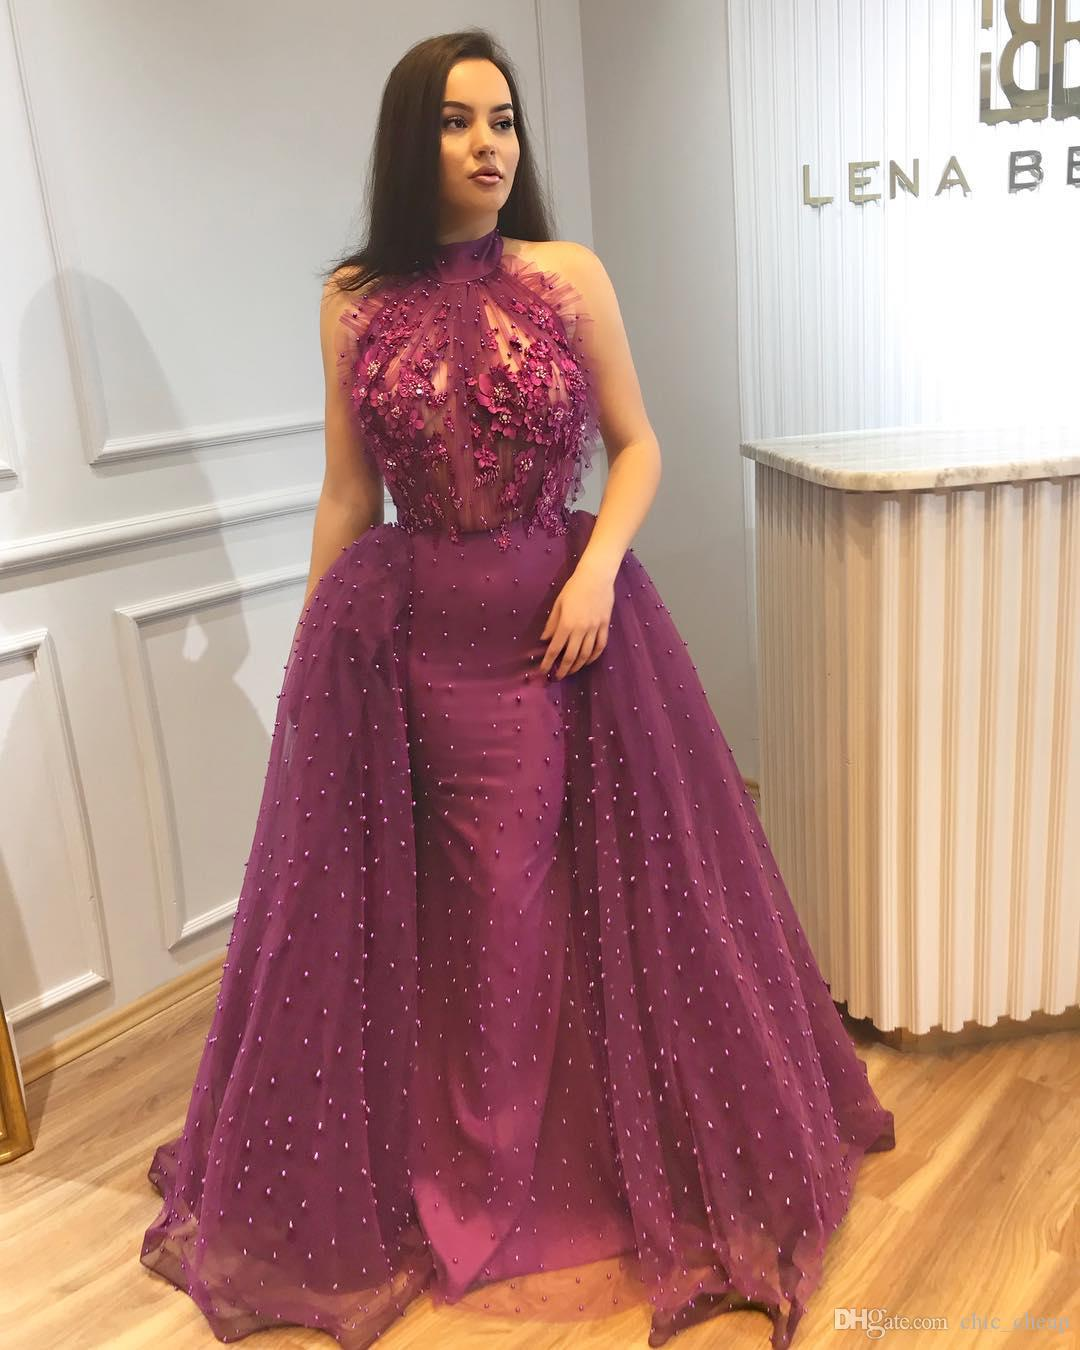 Luxurious Sexy Mermaid 2018 Purple Prom Dresses Halter Pearls Lace Tulle Evening Dresses Stunning Formal Pageant Party Gowns